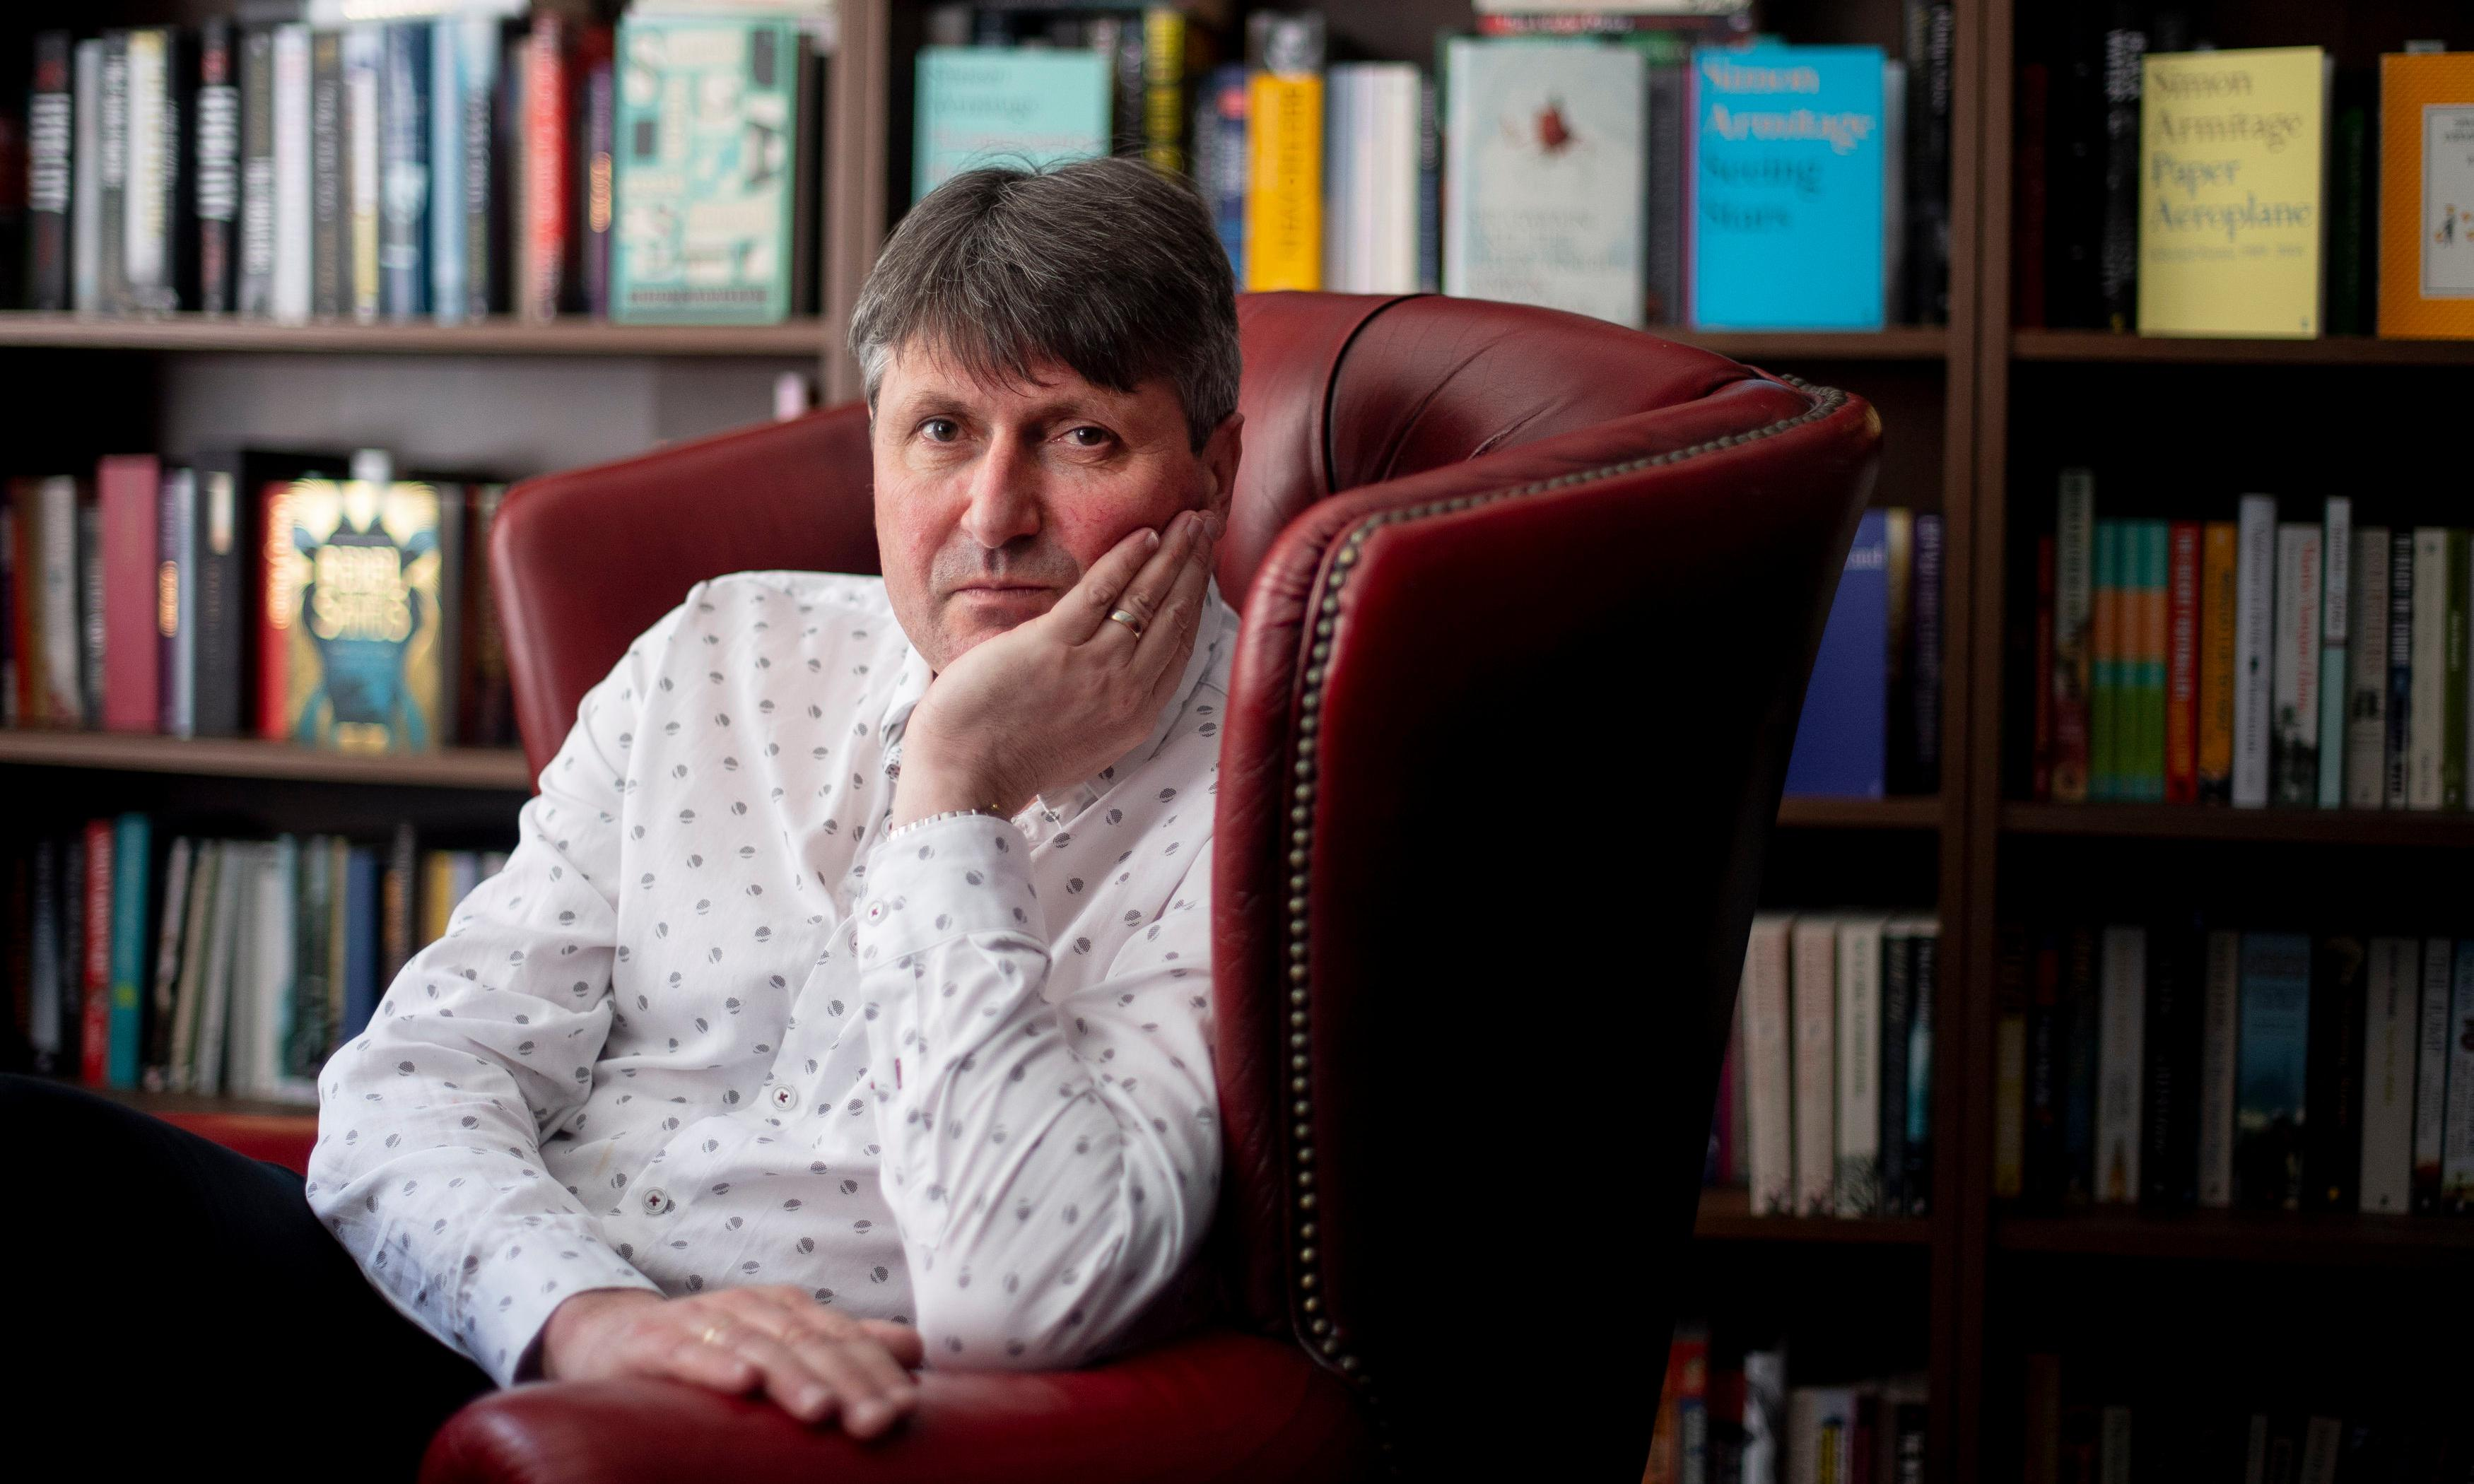 Sandettie Light Vessel Automatic by Simon Armitage review – collected poems